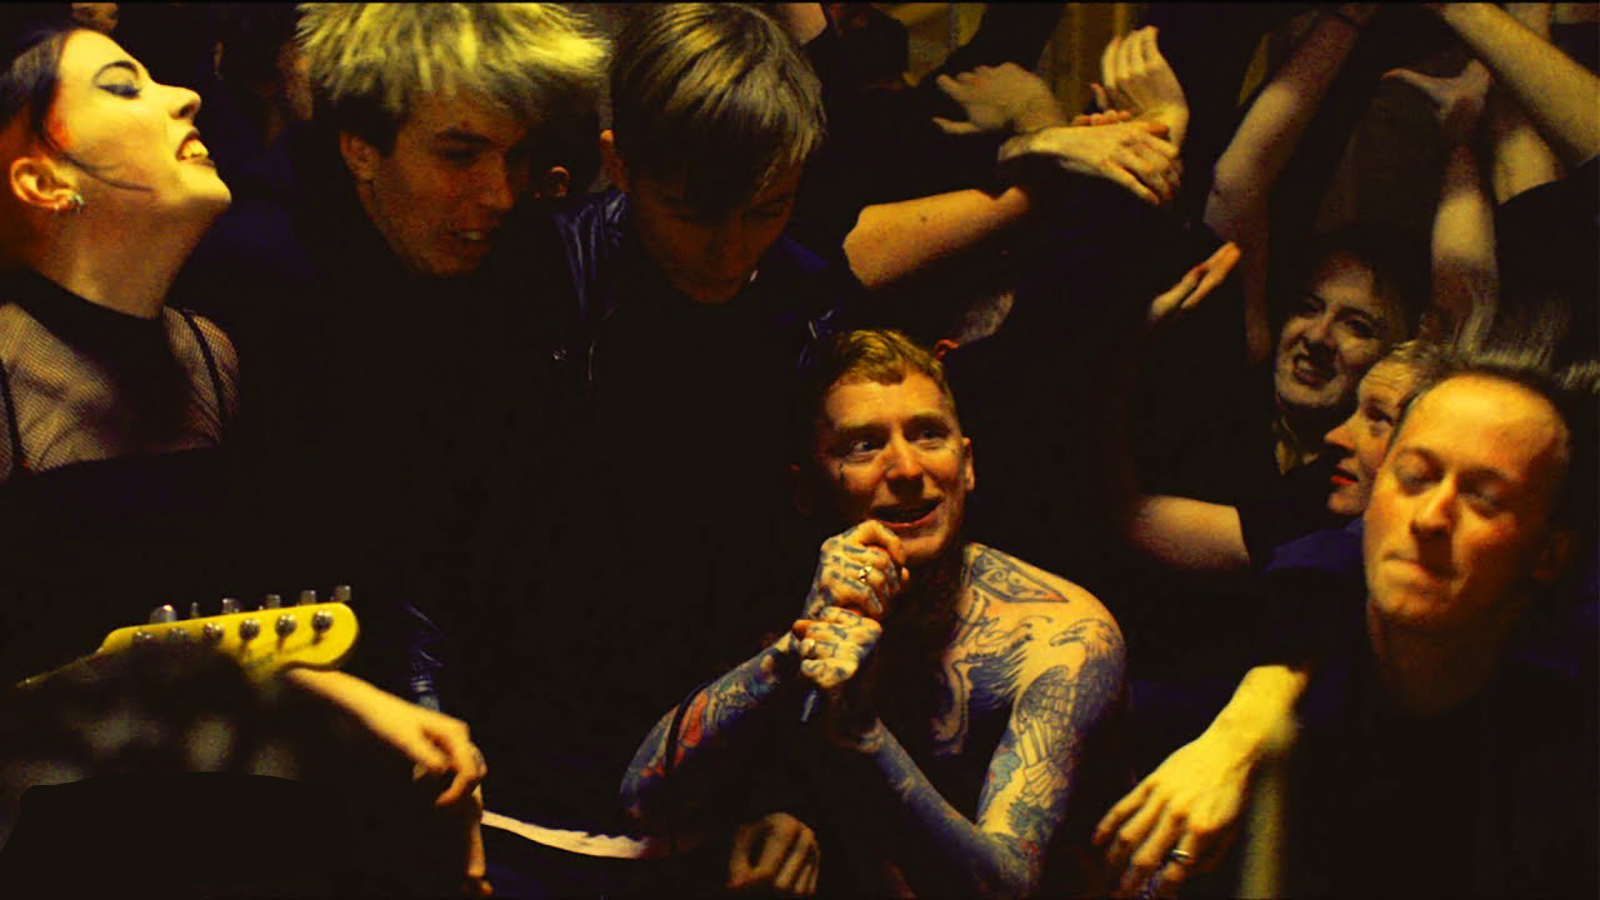 """See Frank Carter & the Rattlesnakes Incite Revolution in New """"Crowbar"""" Video"""